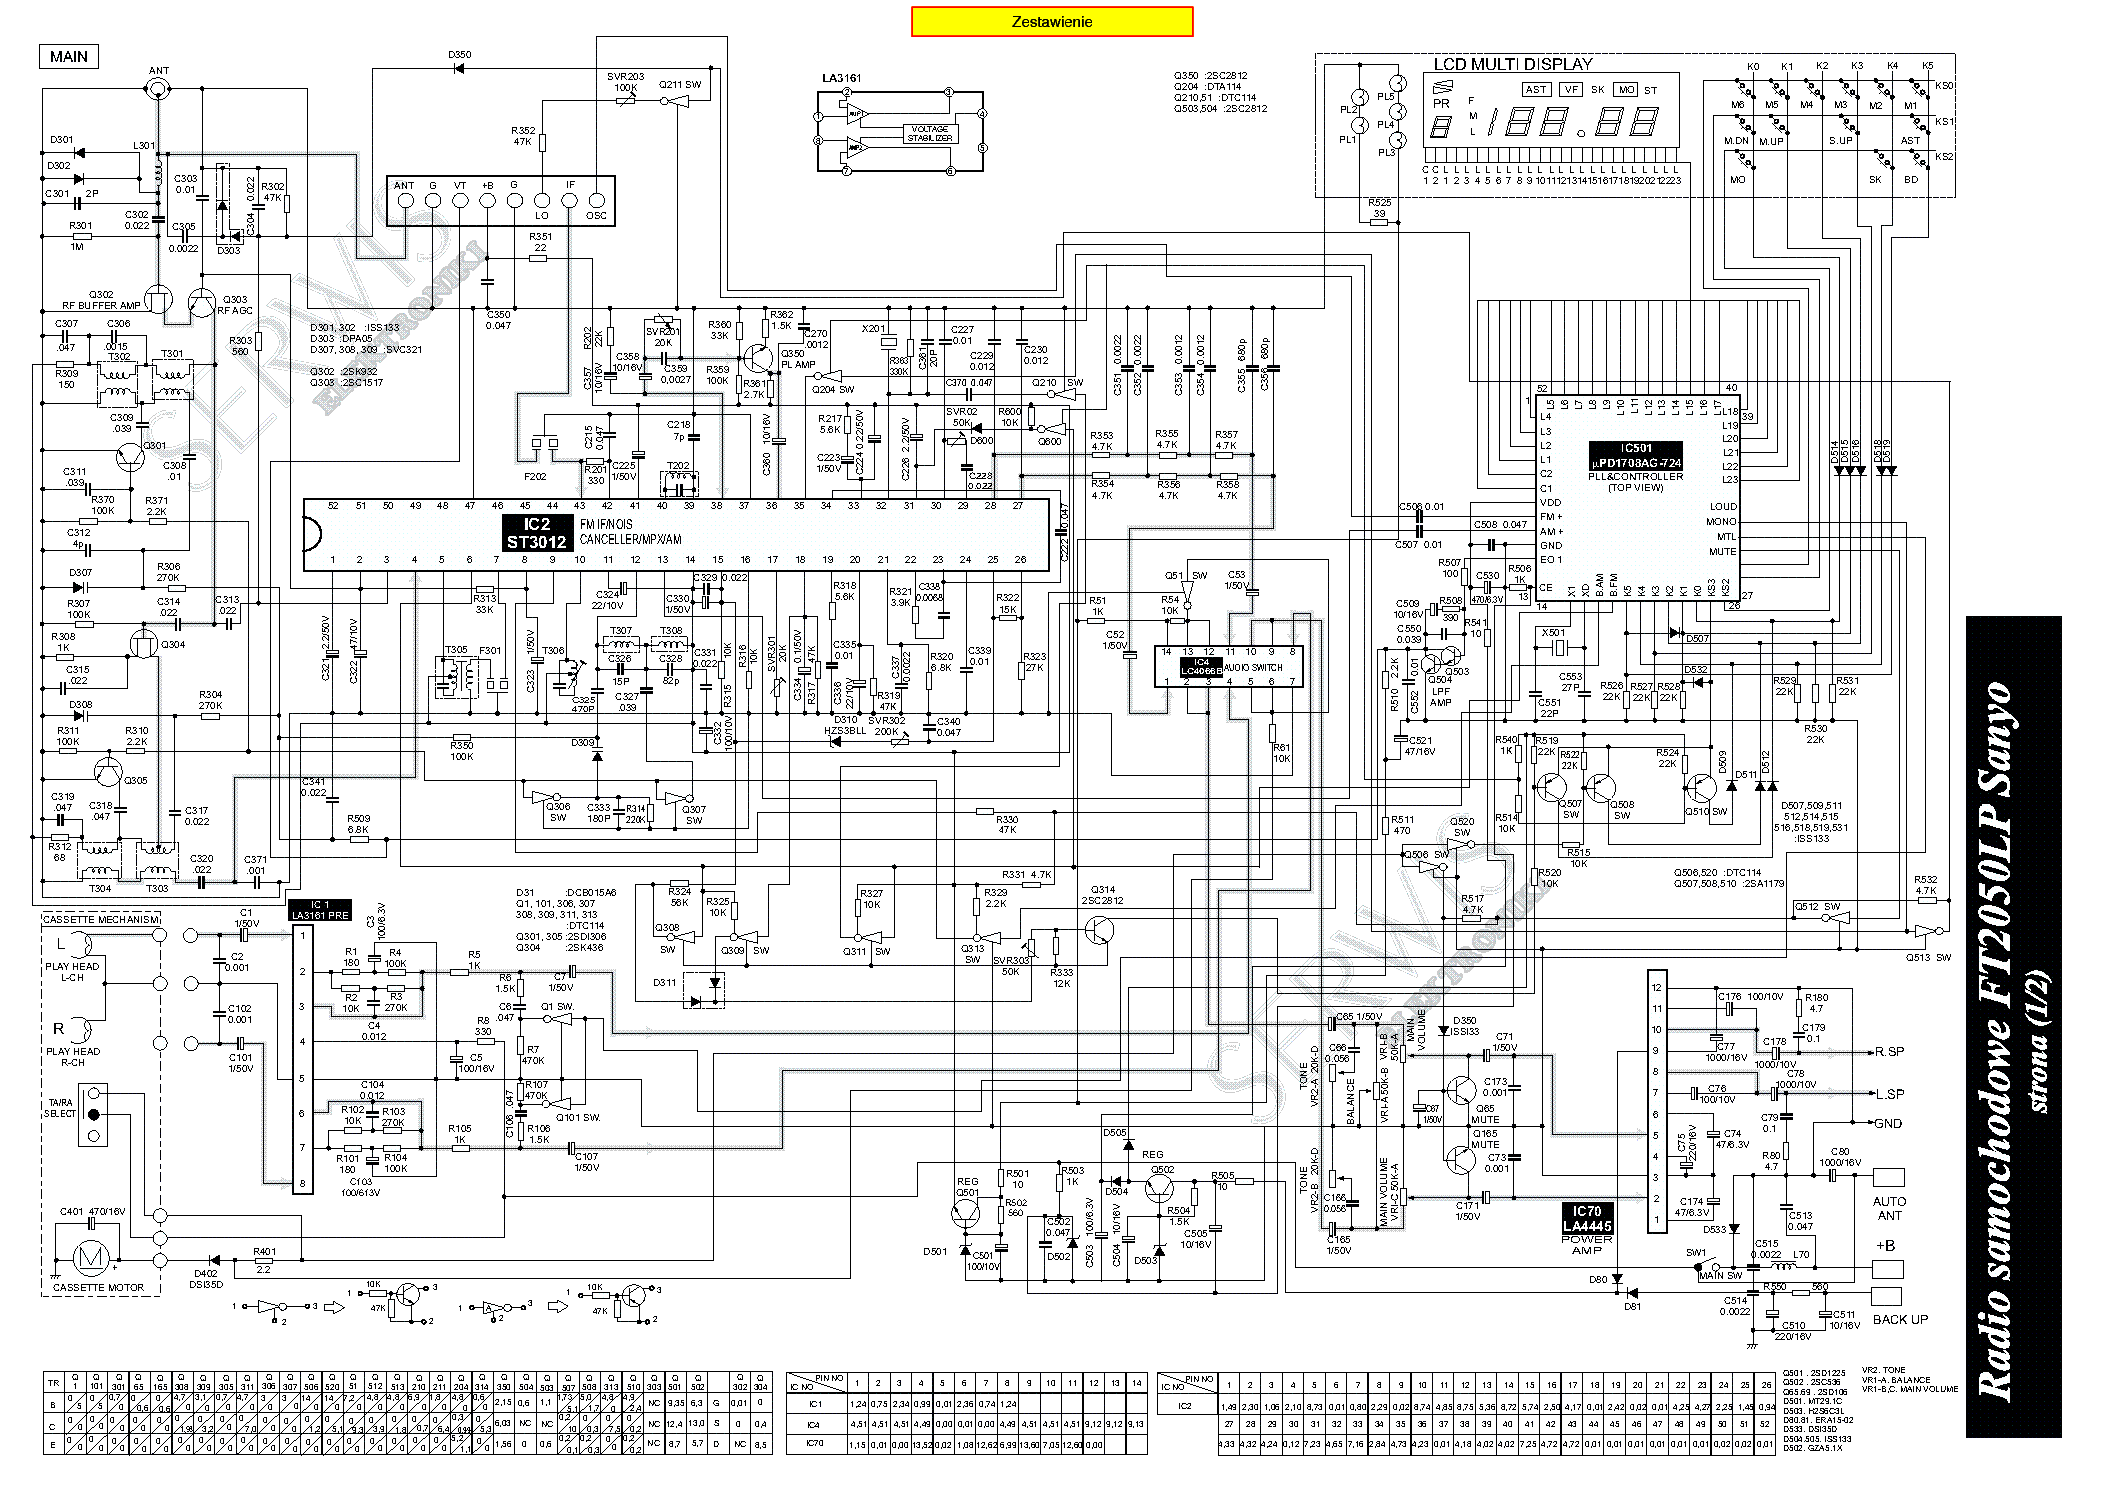 SANYO FT2050LP Service Manual download, schematics, eeprom